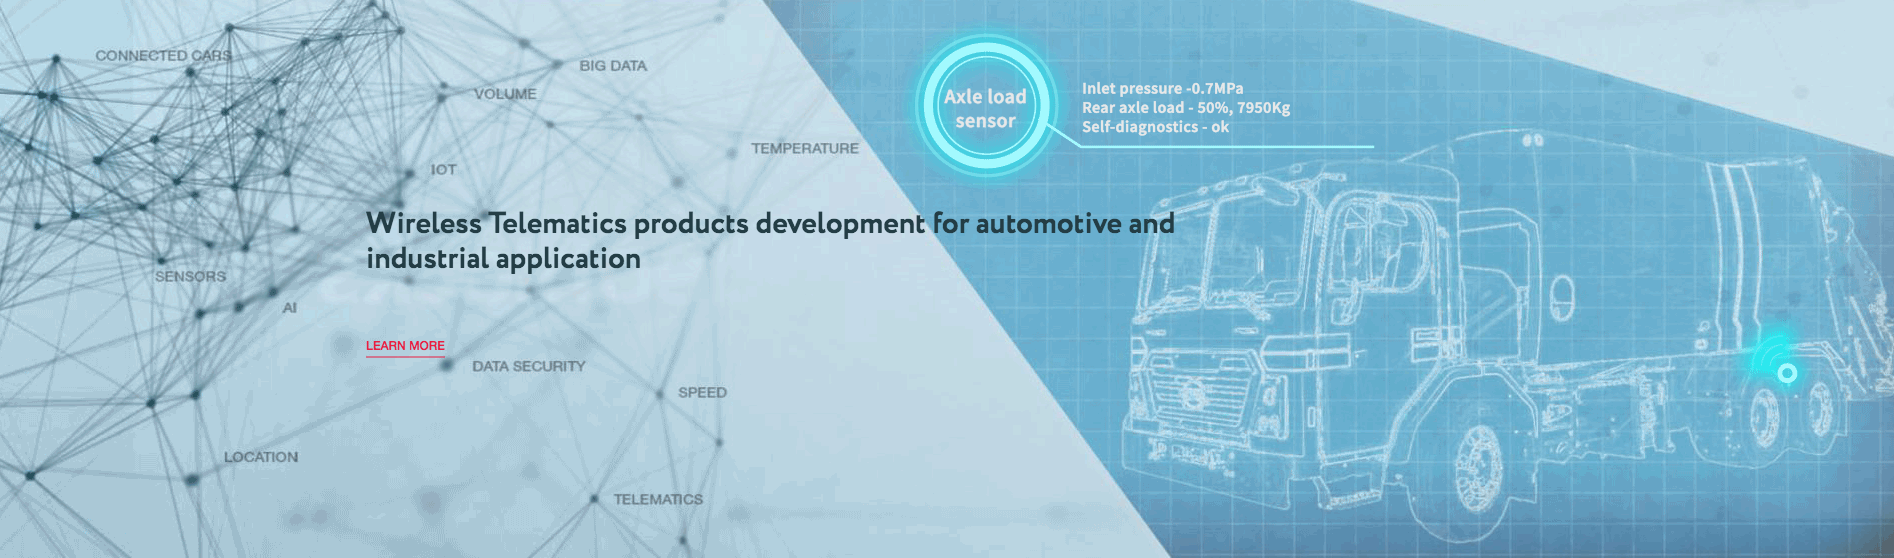 Engineering services for automotive and industrial market